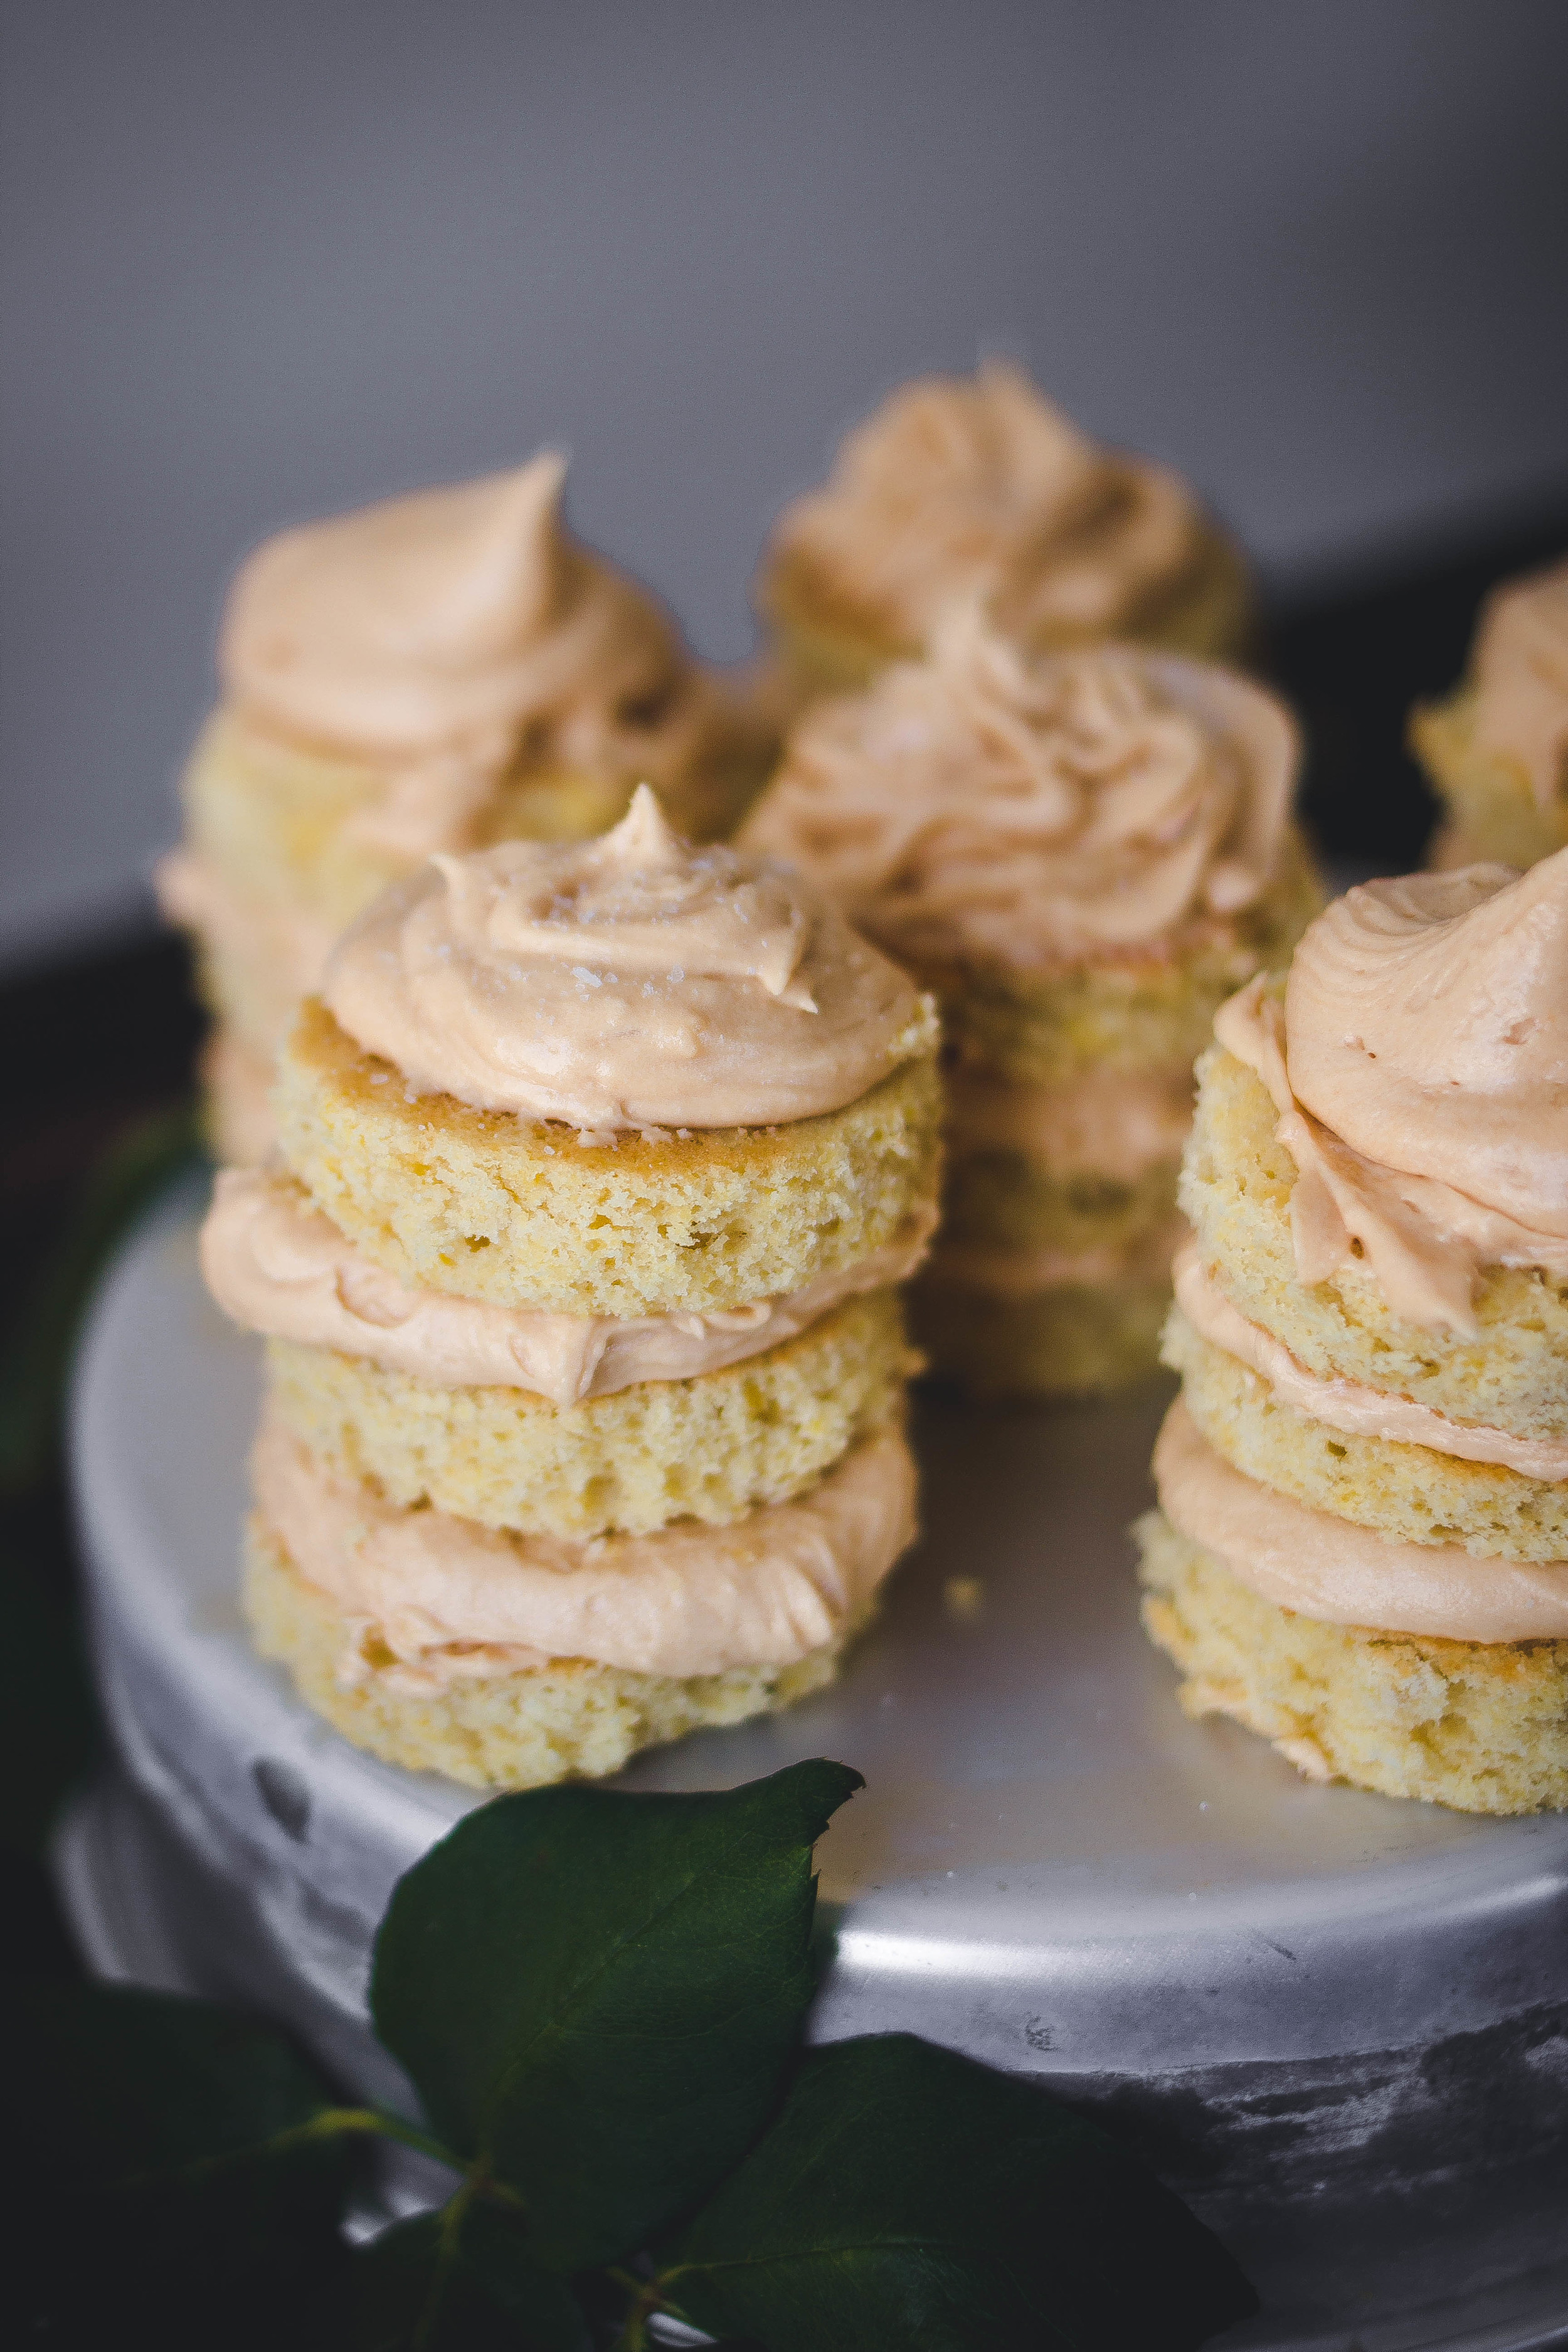 Mini Cakes with Dulce de Leche Buttercream Frosting for Spring | by fit for the soul